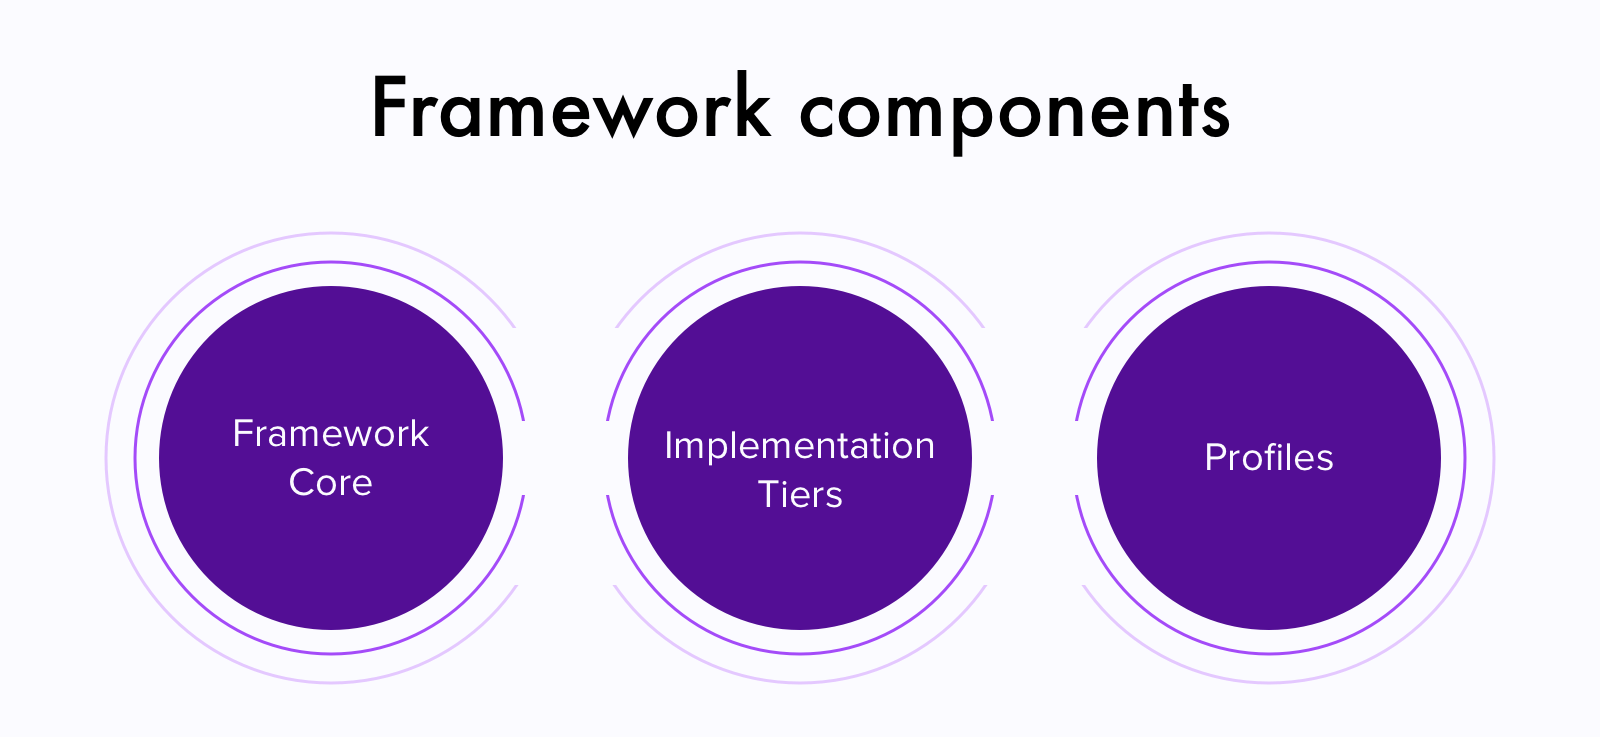 Parts of cybersecurity frameworks